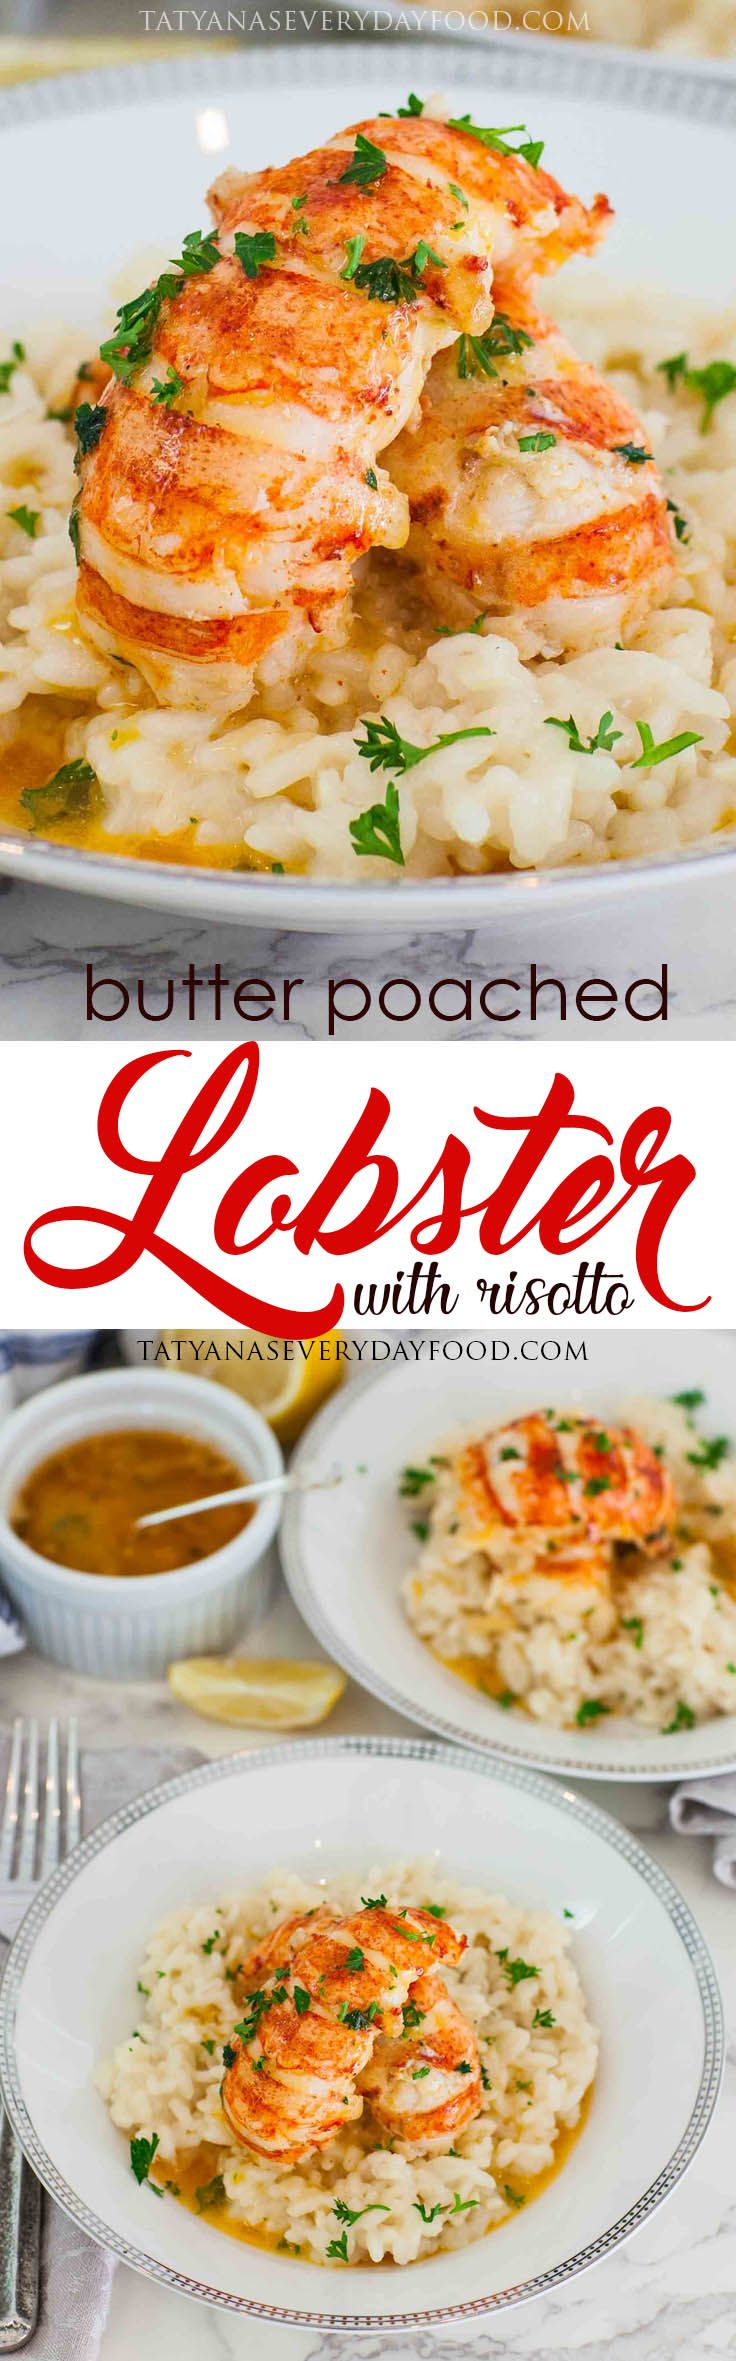 Butter poached lobster with simple risotto tatyanas everyday food butter poached lobster with simple risotto tatyanas everyday food forumfinder Gallery